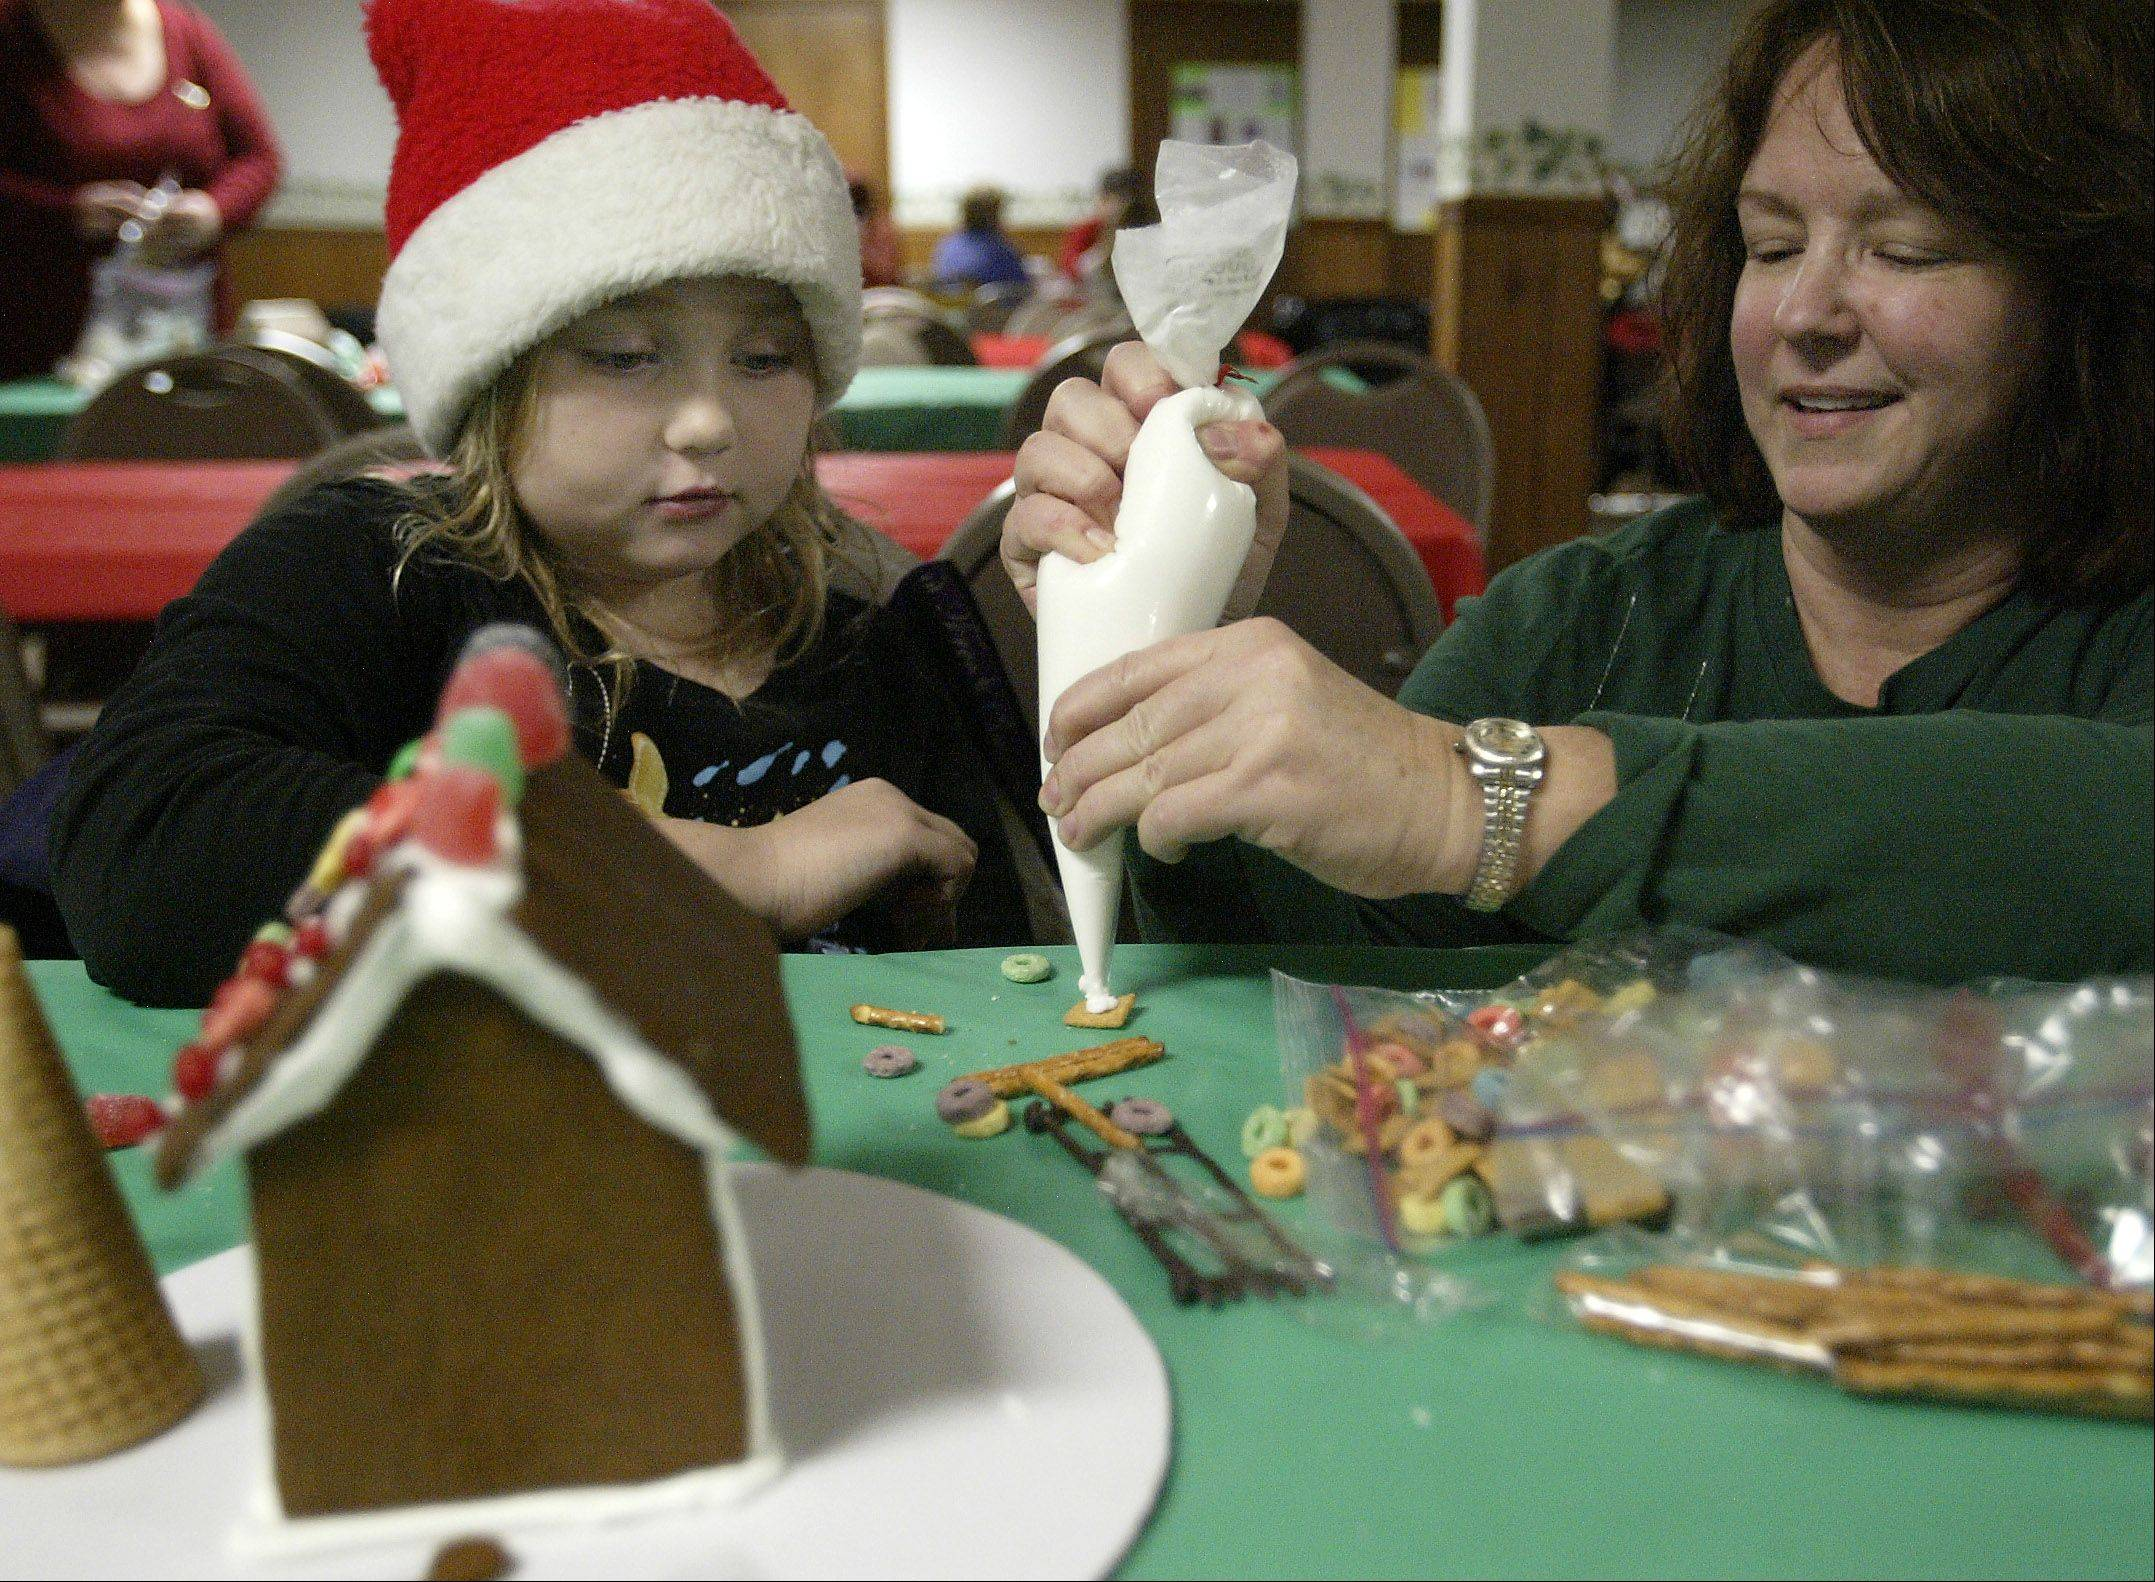 Kylie Marbury-Savage, 7, of West Dundee works on a gingerbread house with her grandmother, Charisse Marbury of Carpentersville, at a previous Dickens in Dundee festival. Crafts are a part of the annual holiday celebration.